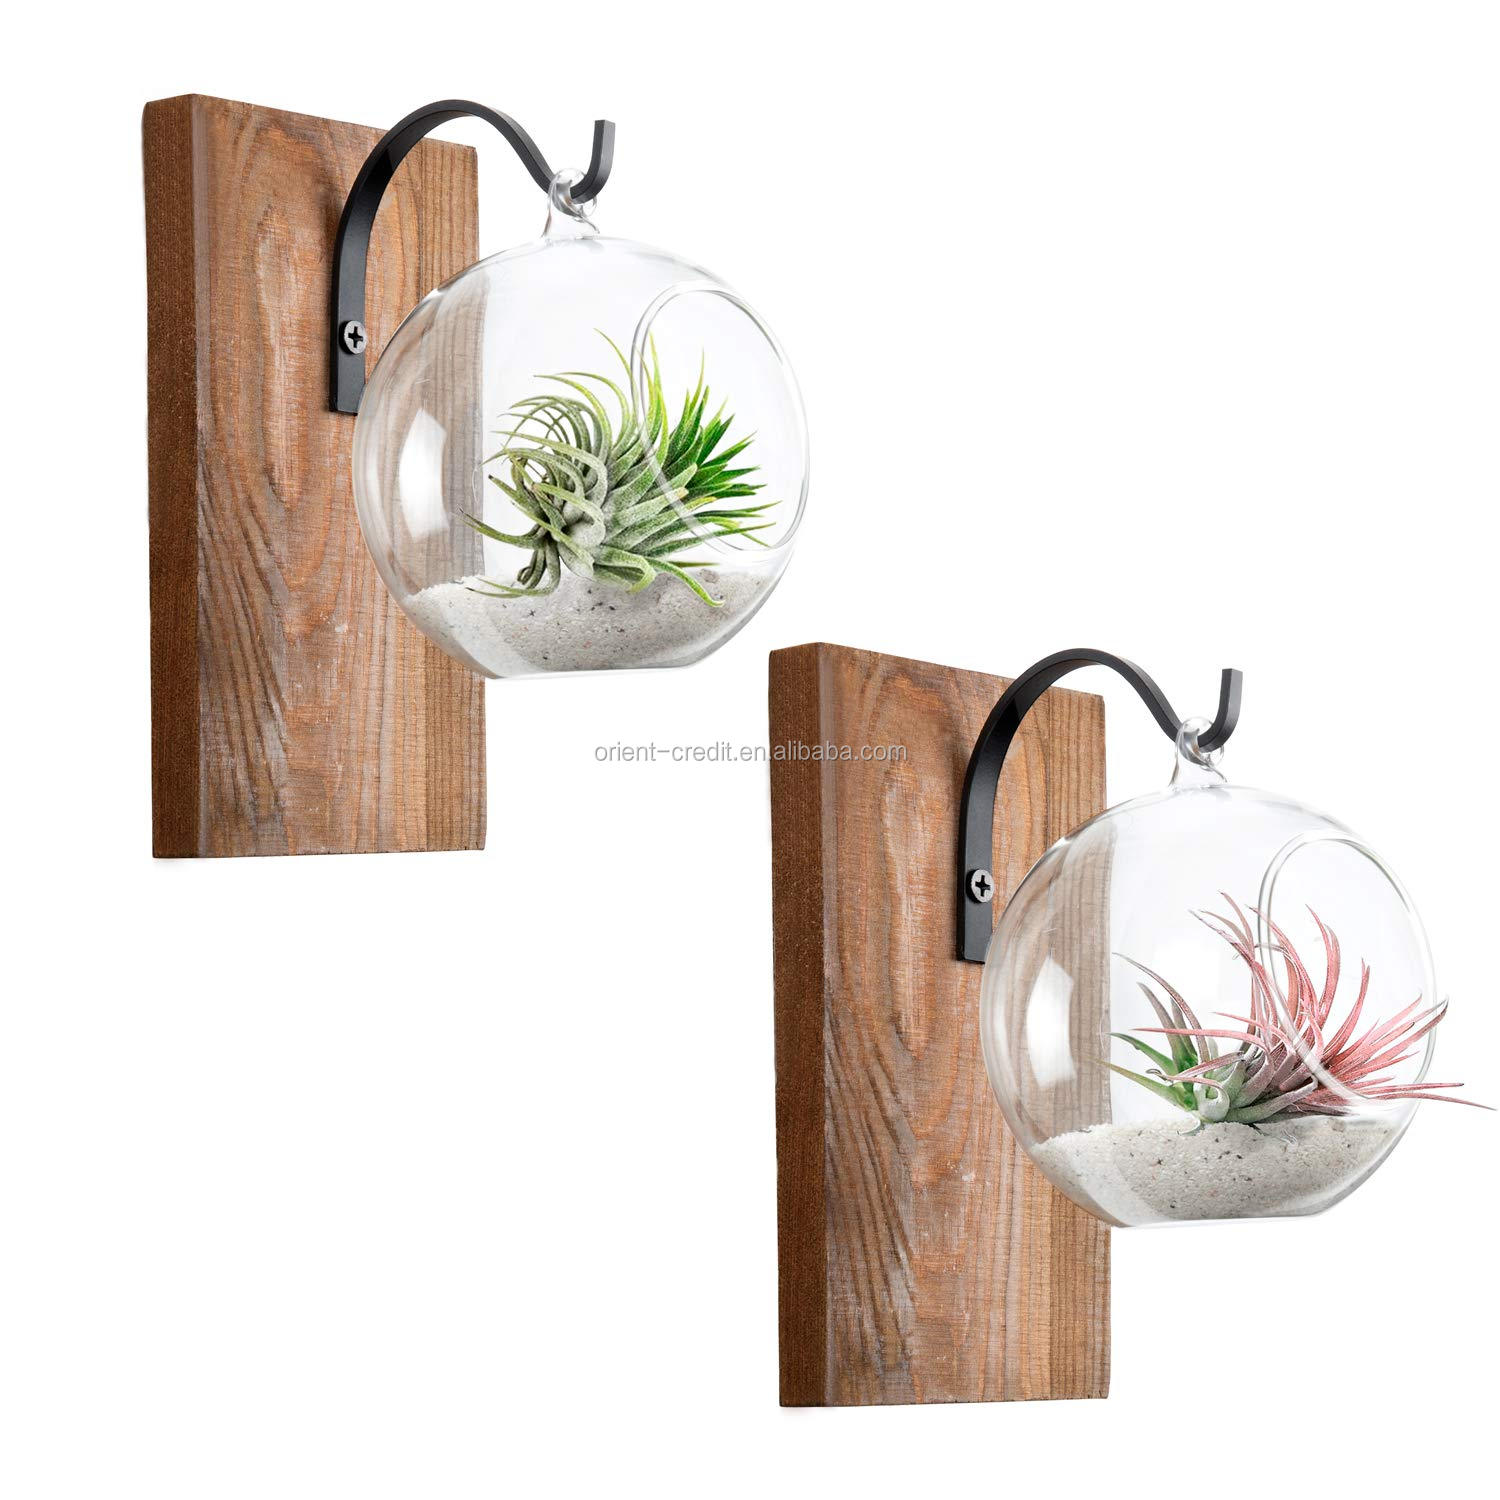 Wall Glass Planter With Wood Board Rustic Decor Air Plant Holder Hanging Terrarium Wrought Iron Hooks For Indoor Office Home Buy Rustic Style